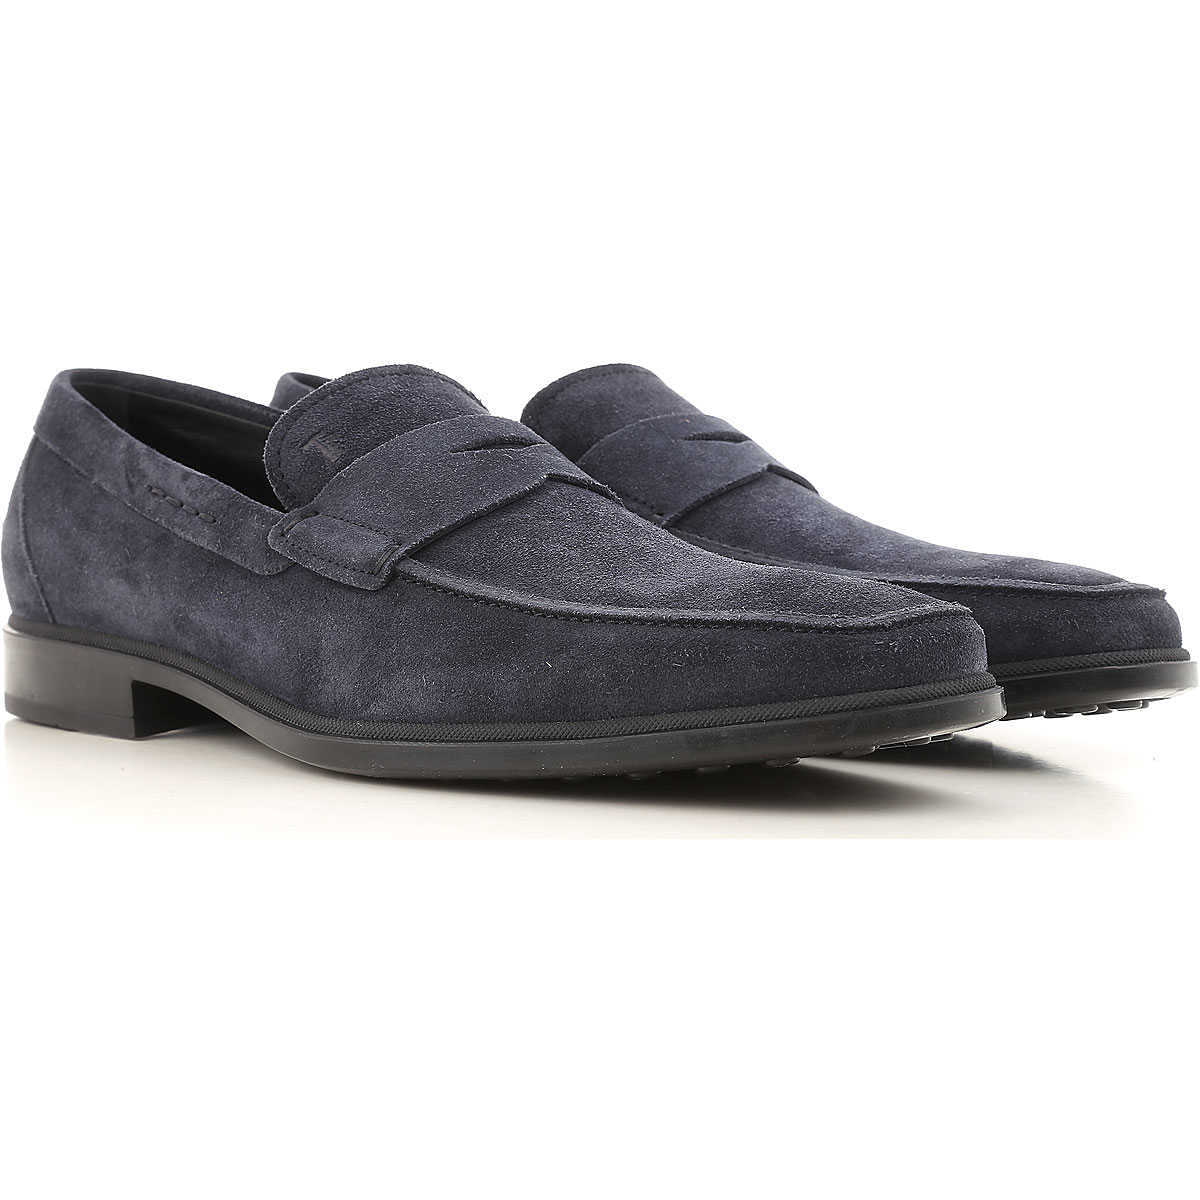 Tods Loafers for Men On Sale Midnight DK - GOOFASH - Mens LOAFERS